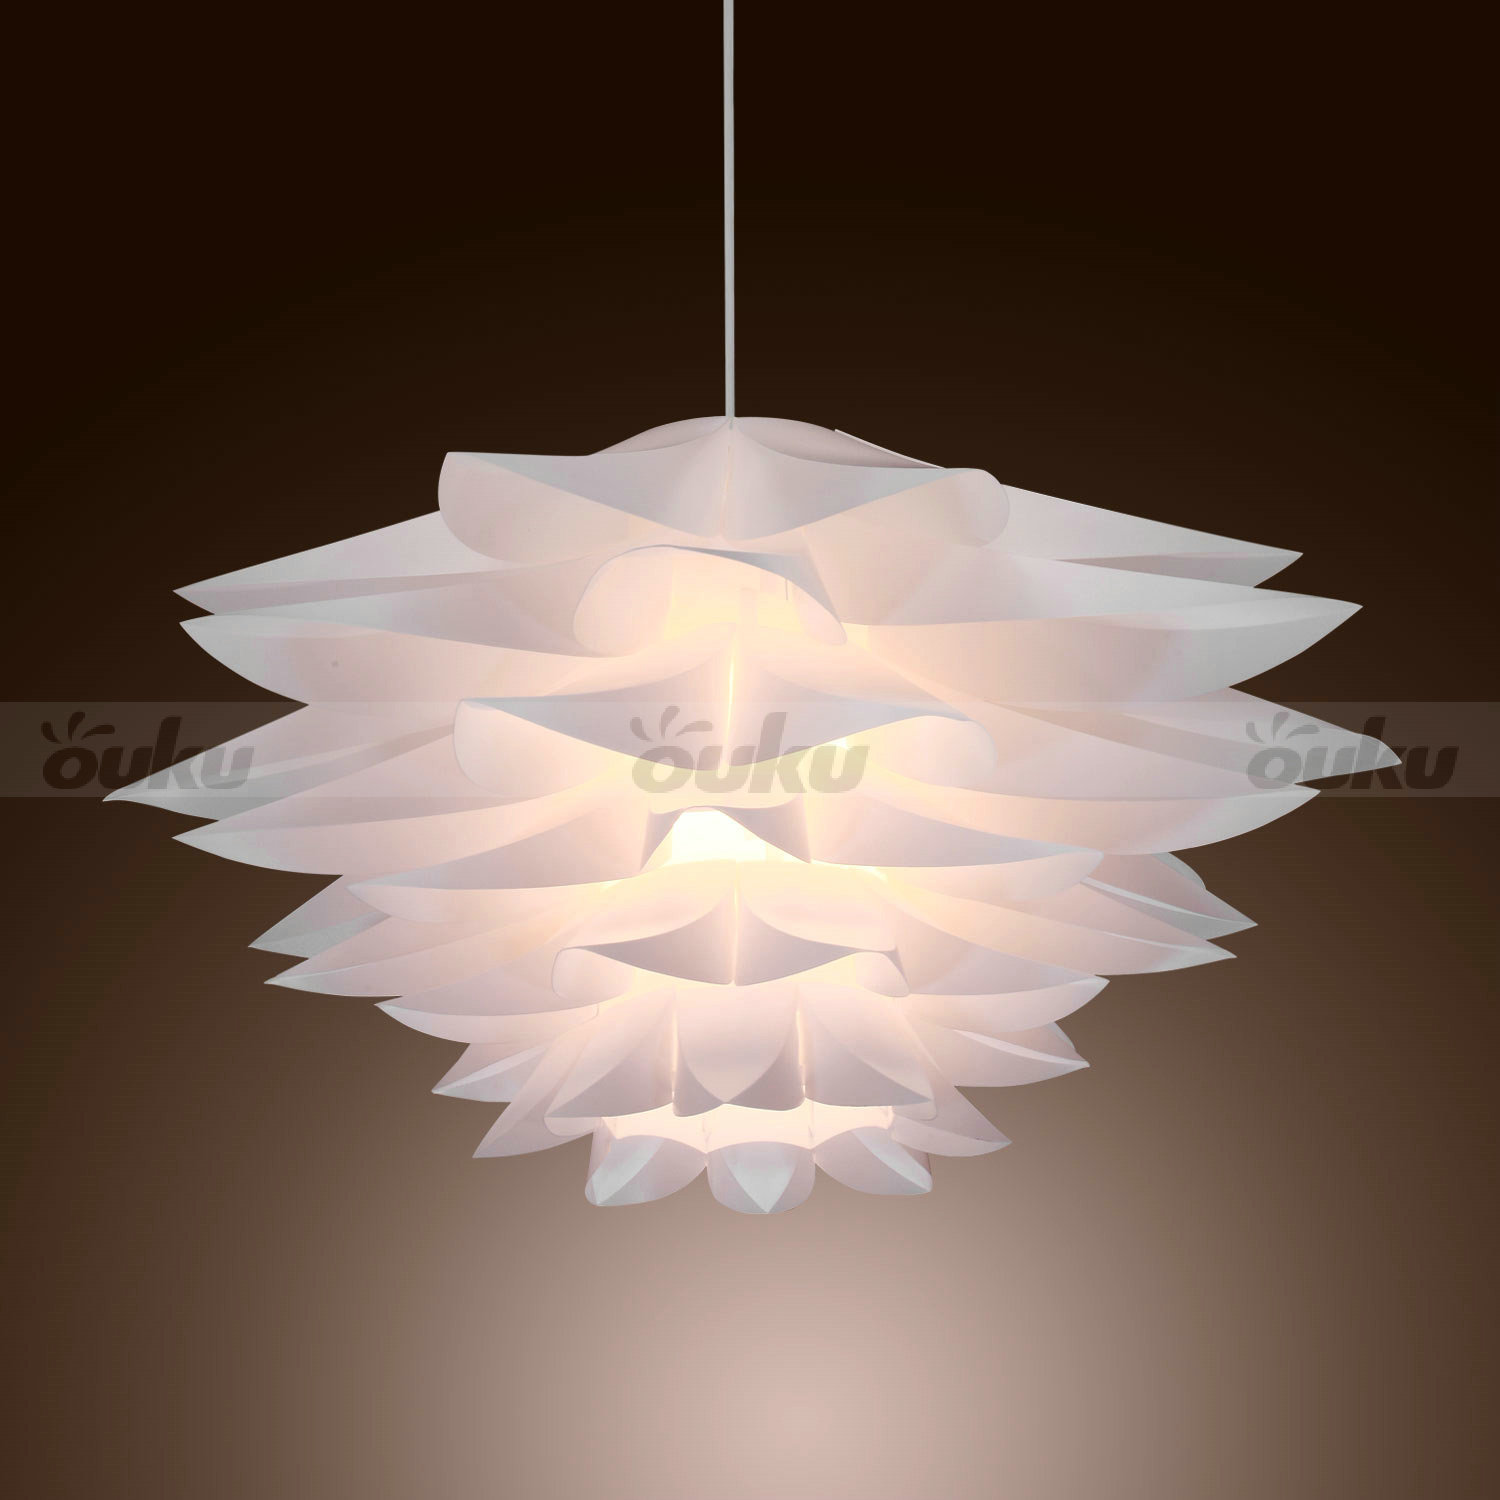 details about new modern white pvc ceiling light pendant lamp living